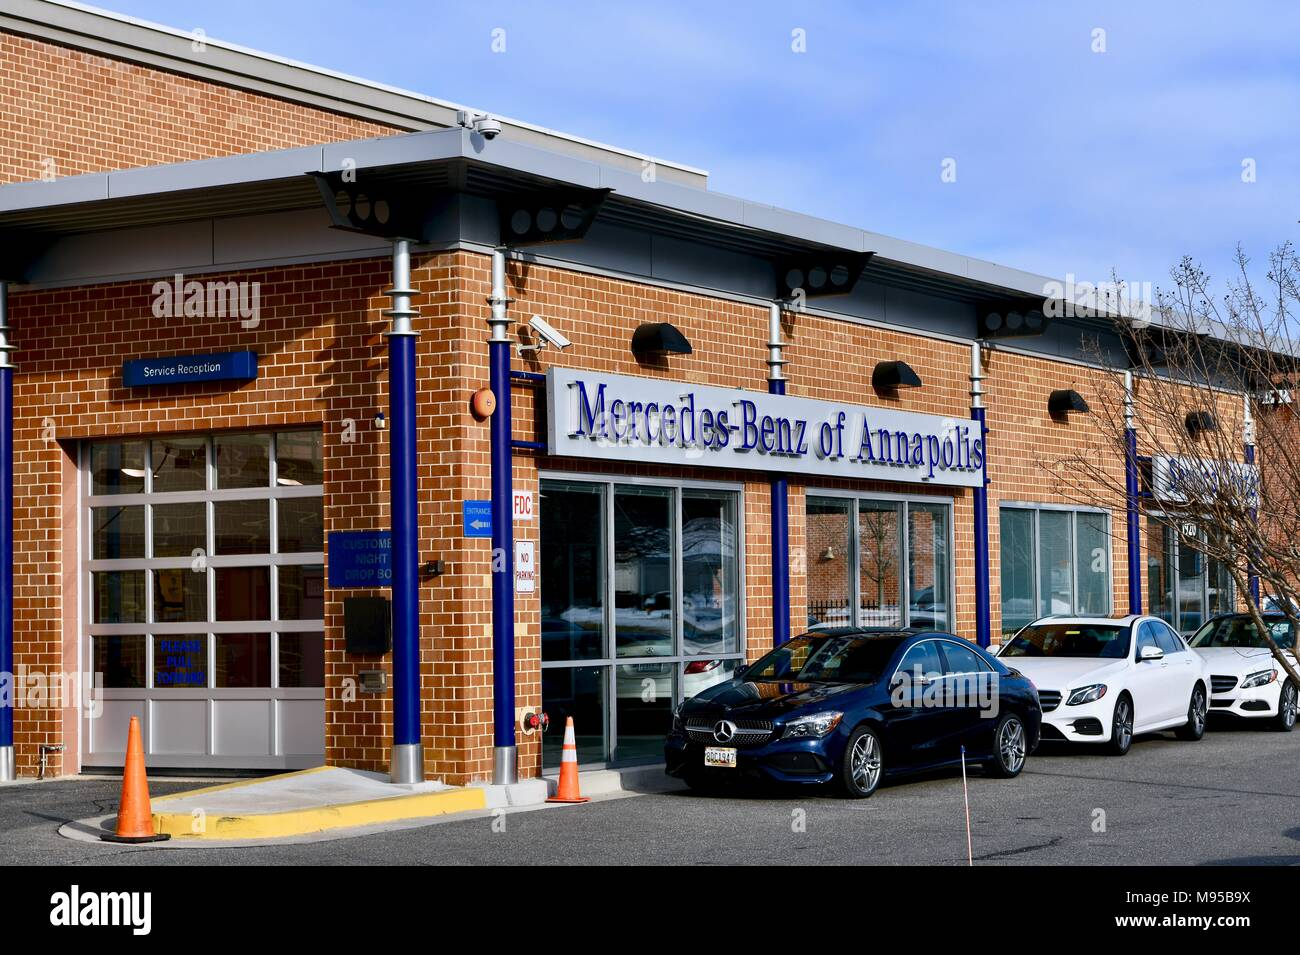 Car annapolis stock photos car annapolis stock images for Mercedes benz dealer in annapolis md